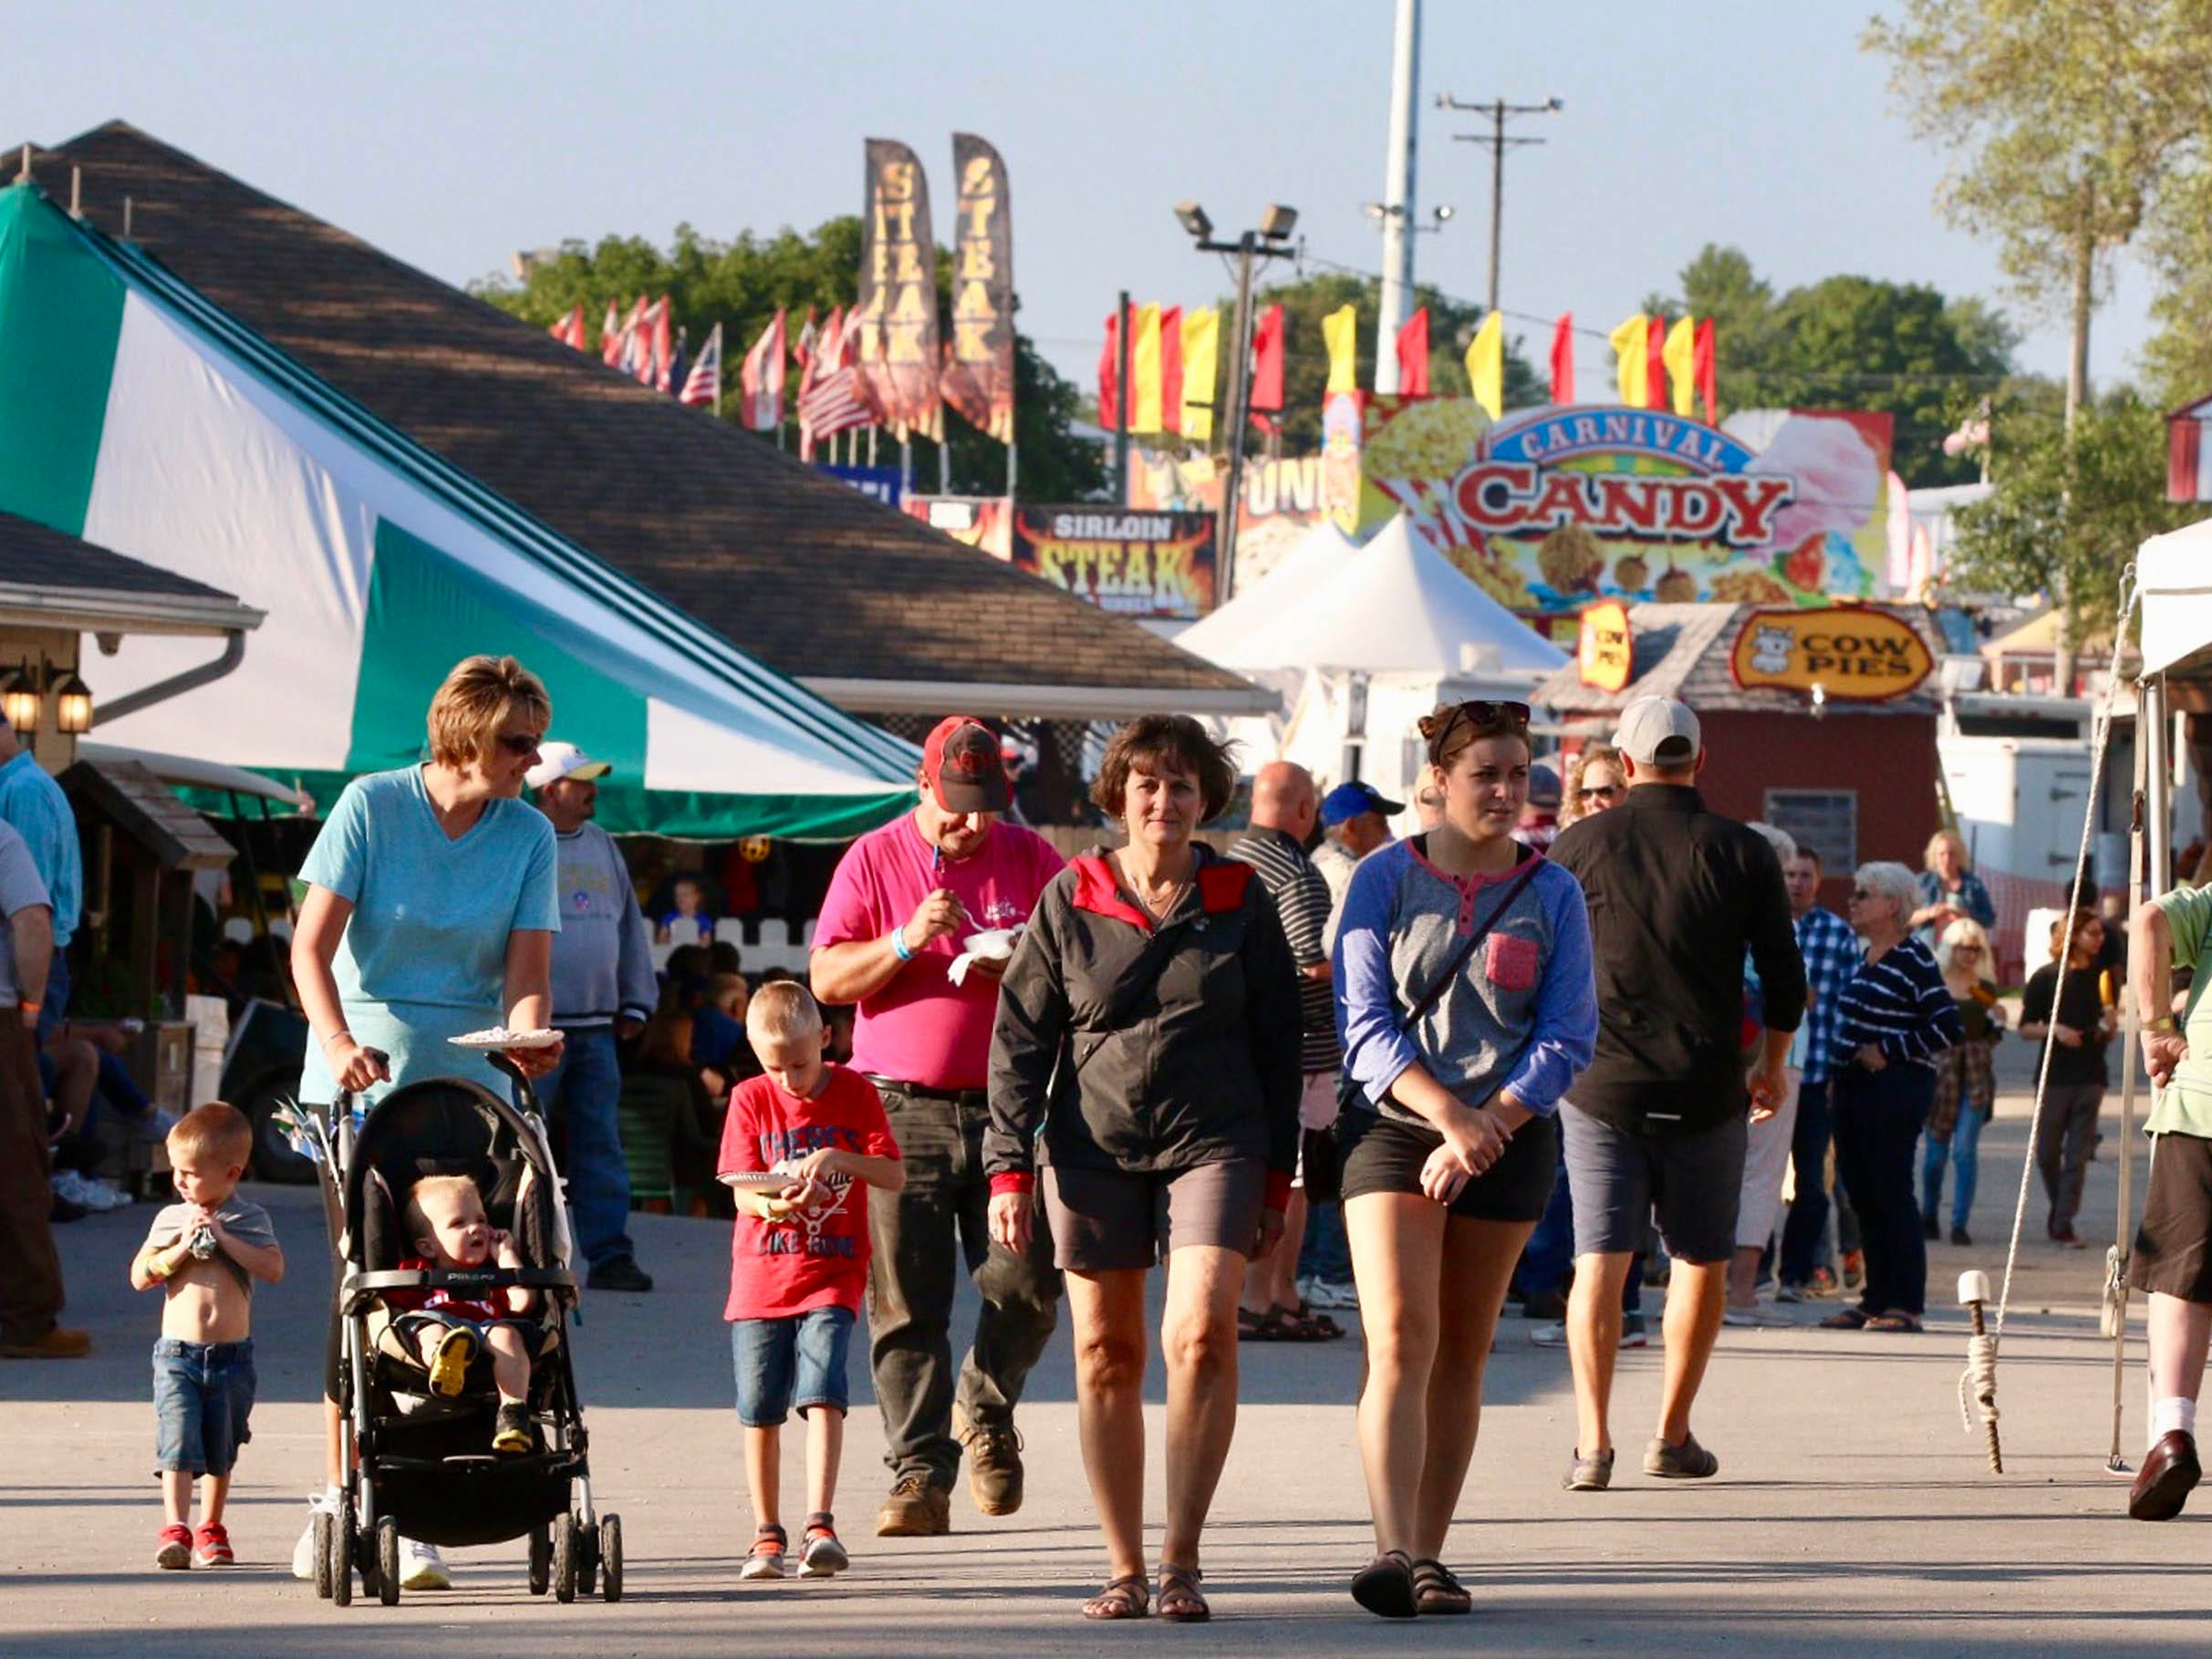 People crowd the midway at the Sheboygan County Fair, Thursday, August 30, 2018, in Plymouth, Wis.